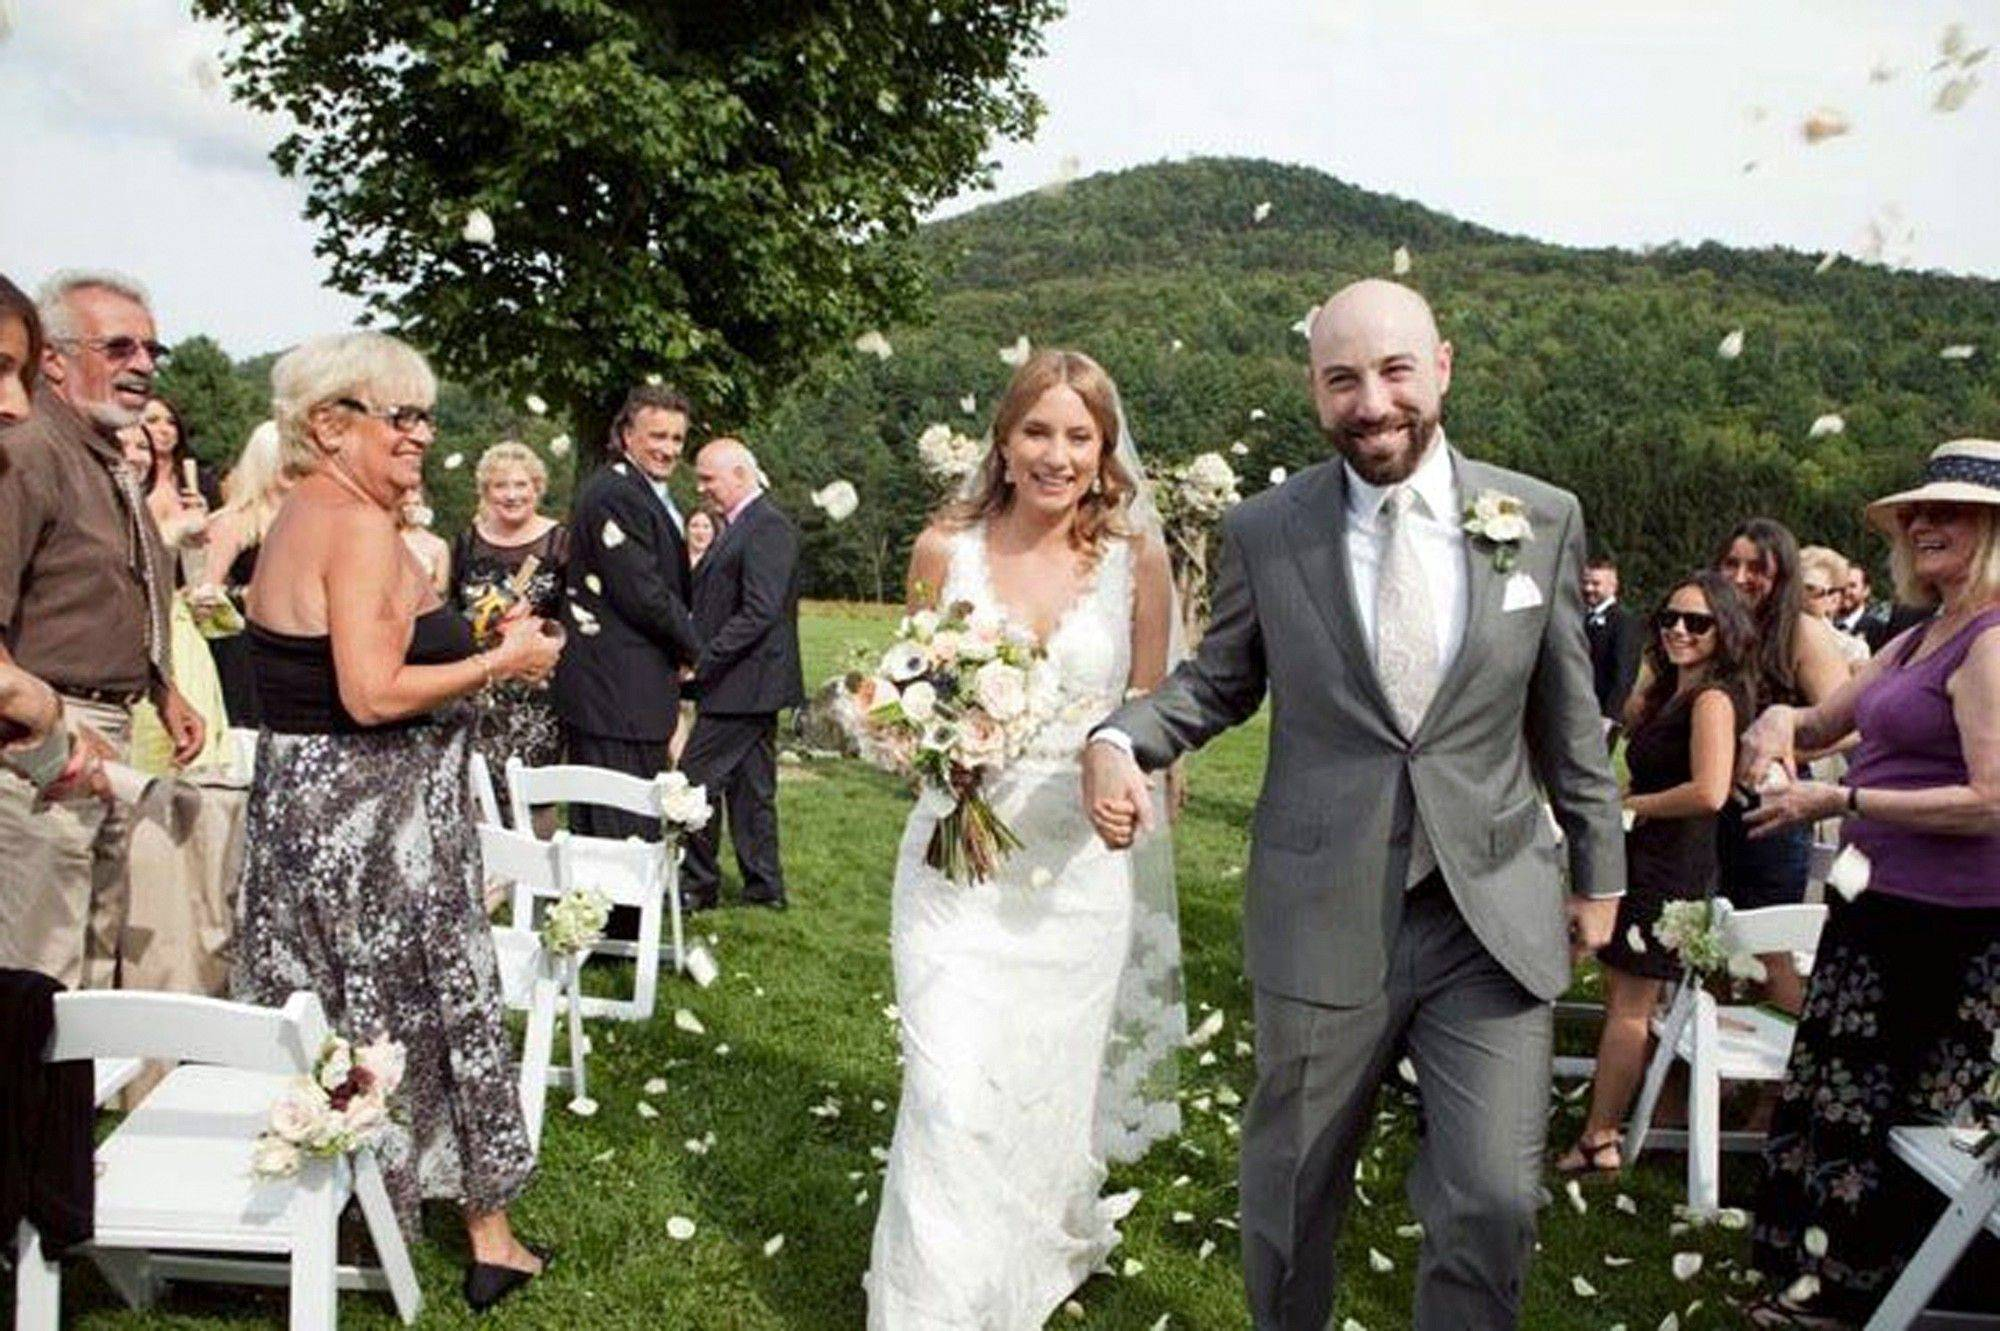 Marc and Janina Leibowitz were wed at Riverside Farm in Pittsfield, Vt., on Saturday. The couple remains stranded with 60 of their wedding guests in Pittsfield Tuesday, after Tropical Storm Irene washed away bridges and their main road out on Sunday.